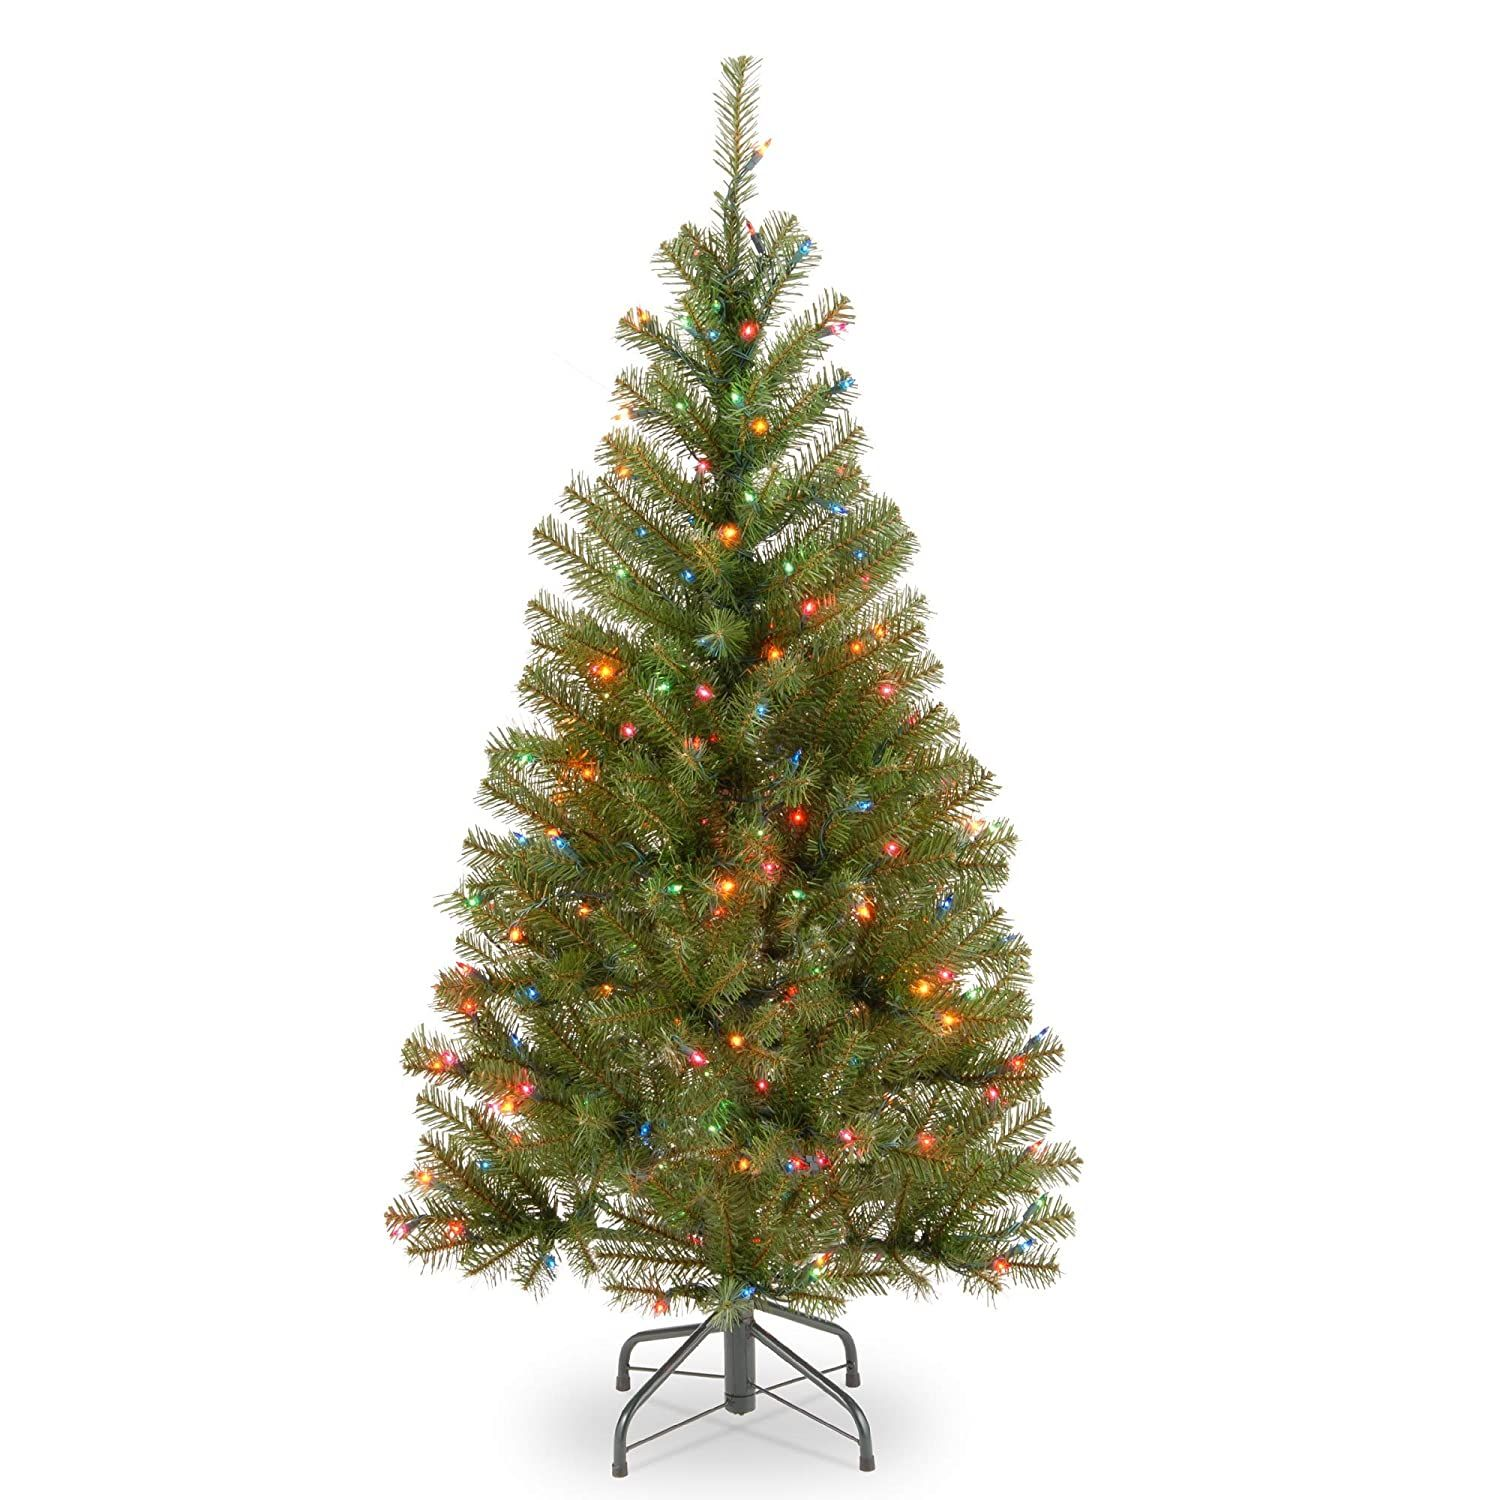 4 Ft Pre Lit Aspen Spruce Artificial Christmas Tree Multi Color Lights See This Gre In 2020 Artificial Christmas Tree Pre Lit Christmas Tree Green Christmas Tree